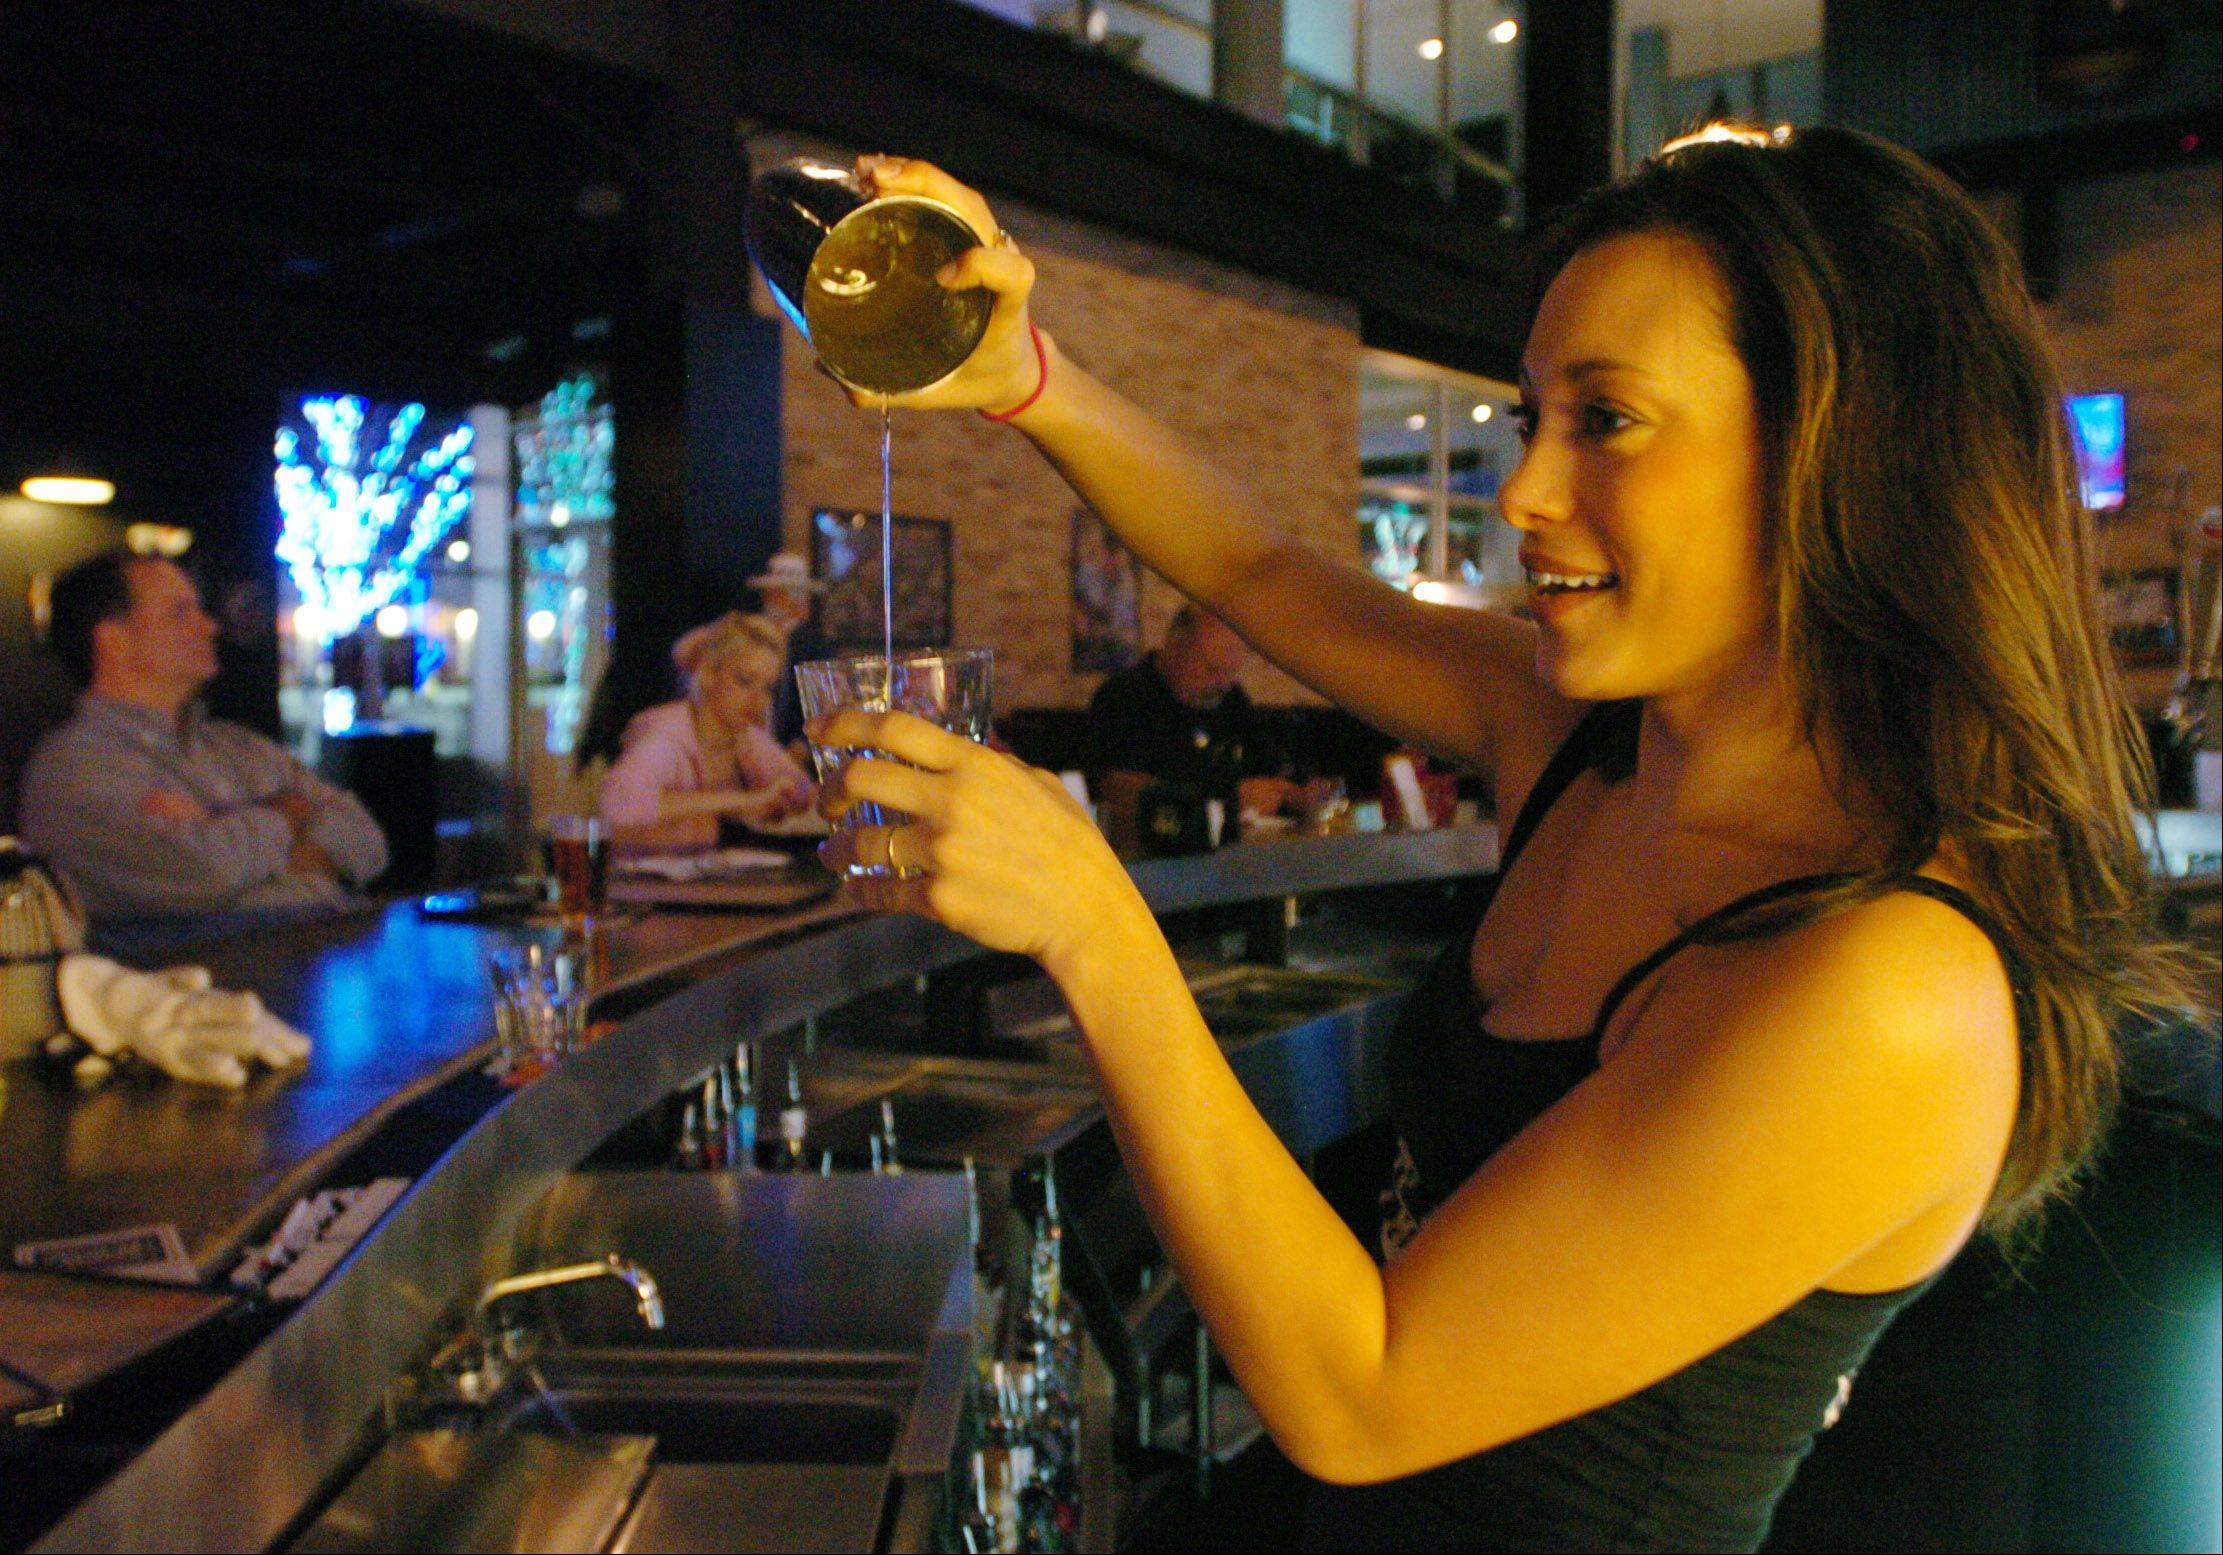 """Whiskey girl"" Brooke Miner pours a Southern Hurricane at Toby Keith's I Love This Bar & Grill in Rosemont."